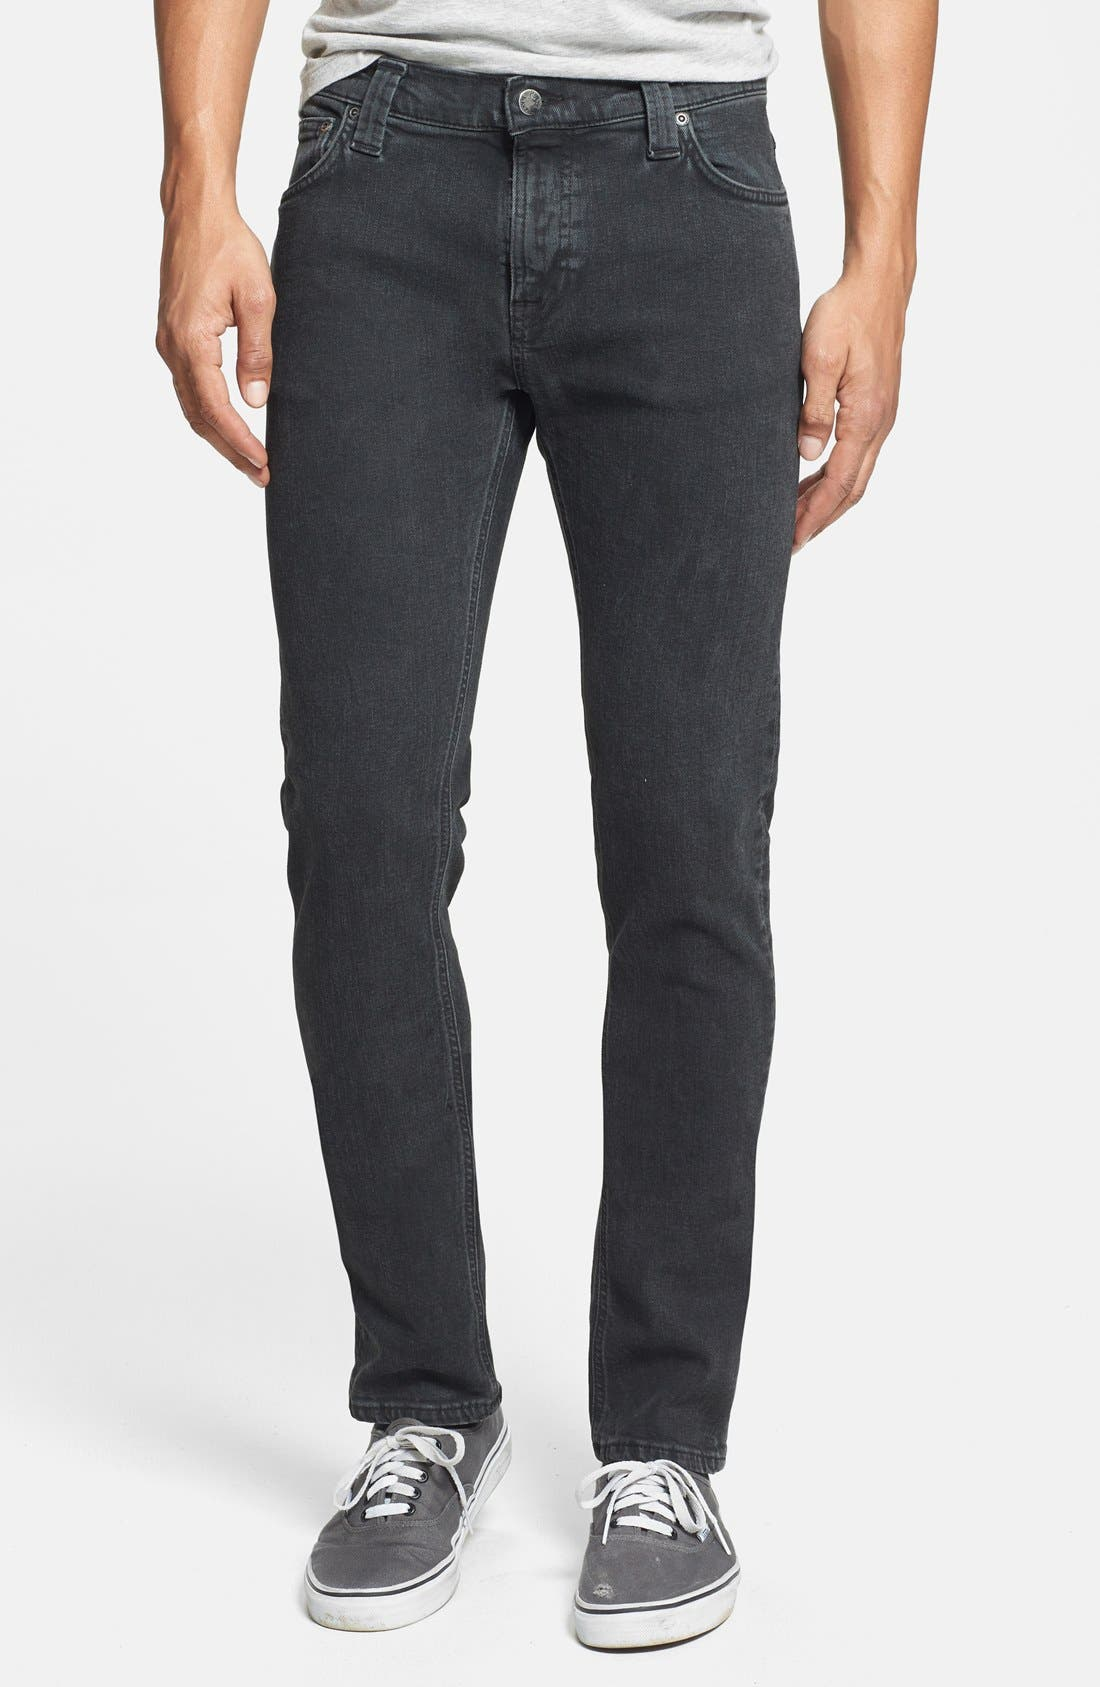 Alternate Image 1 Selected - Nudie Jeans 'Tube Tom' Skinny Fit Jeans (Organic Painted Black)